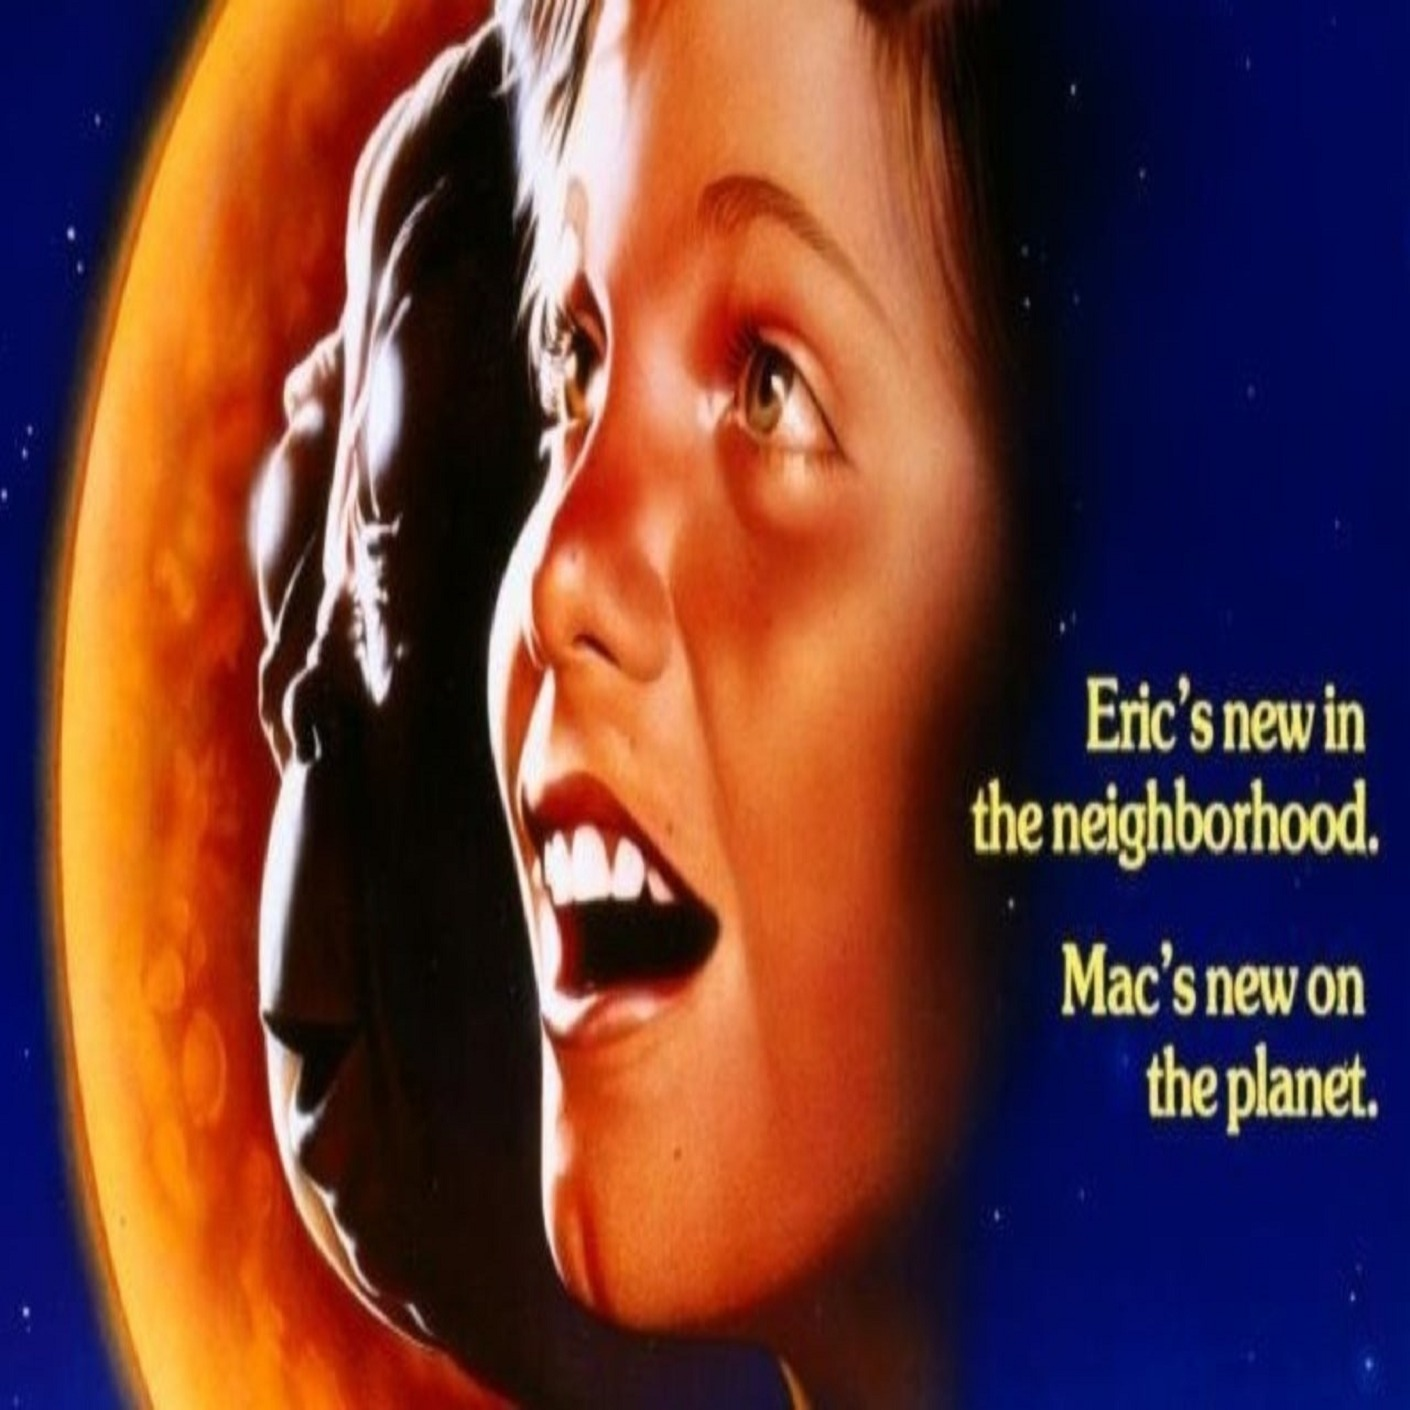 GVN Presents: They Called This a Movie - Mac and Me (1988)